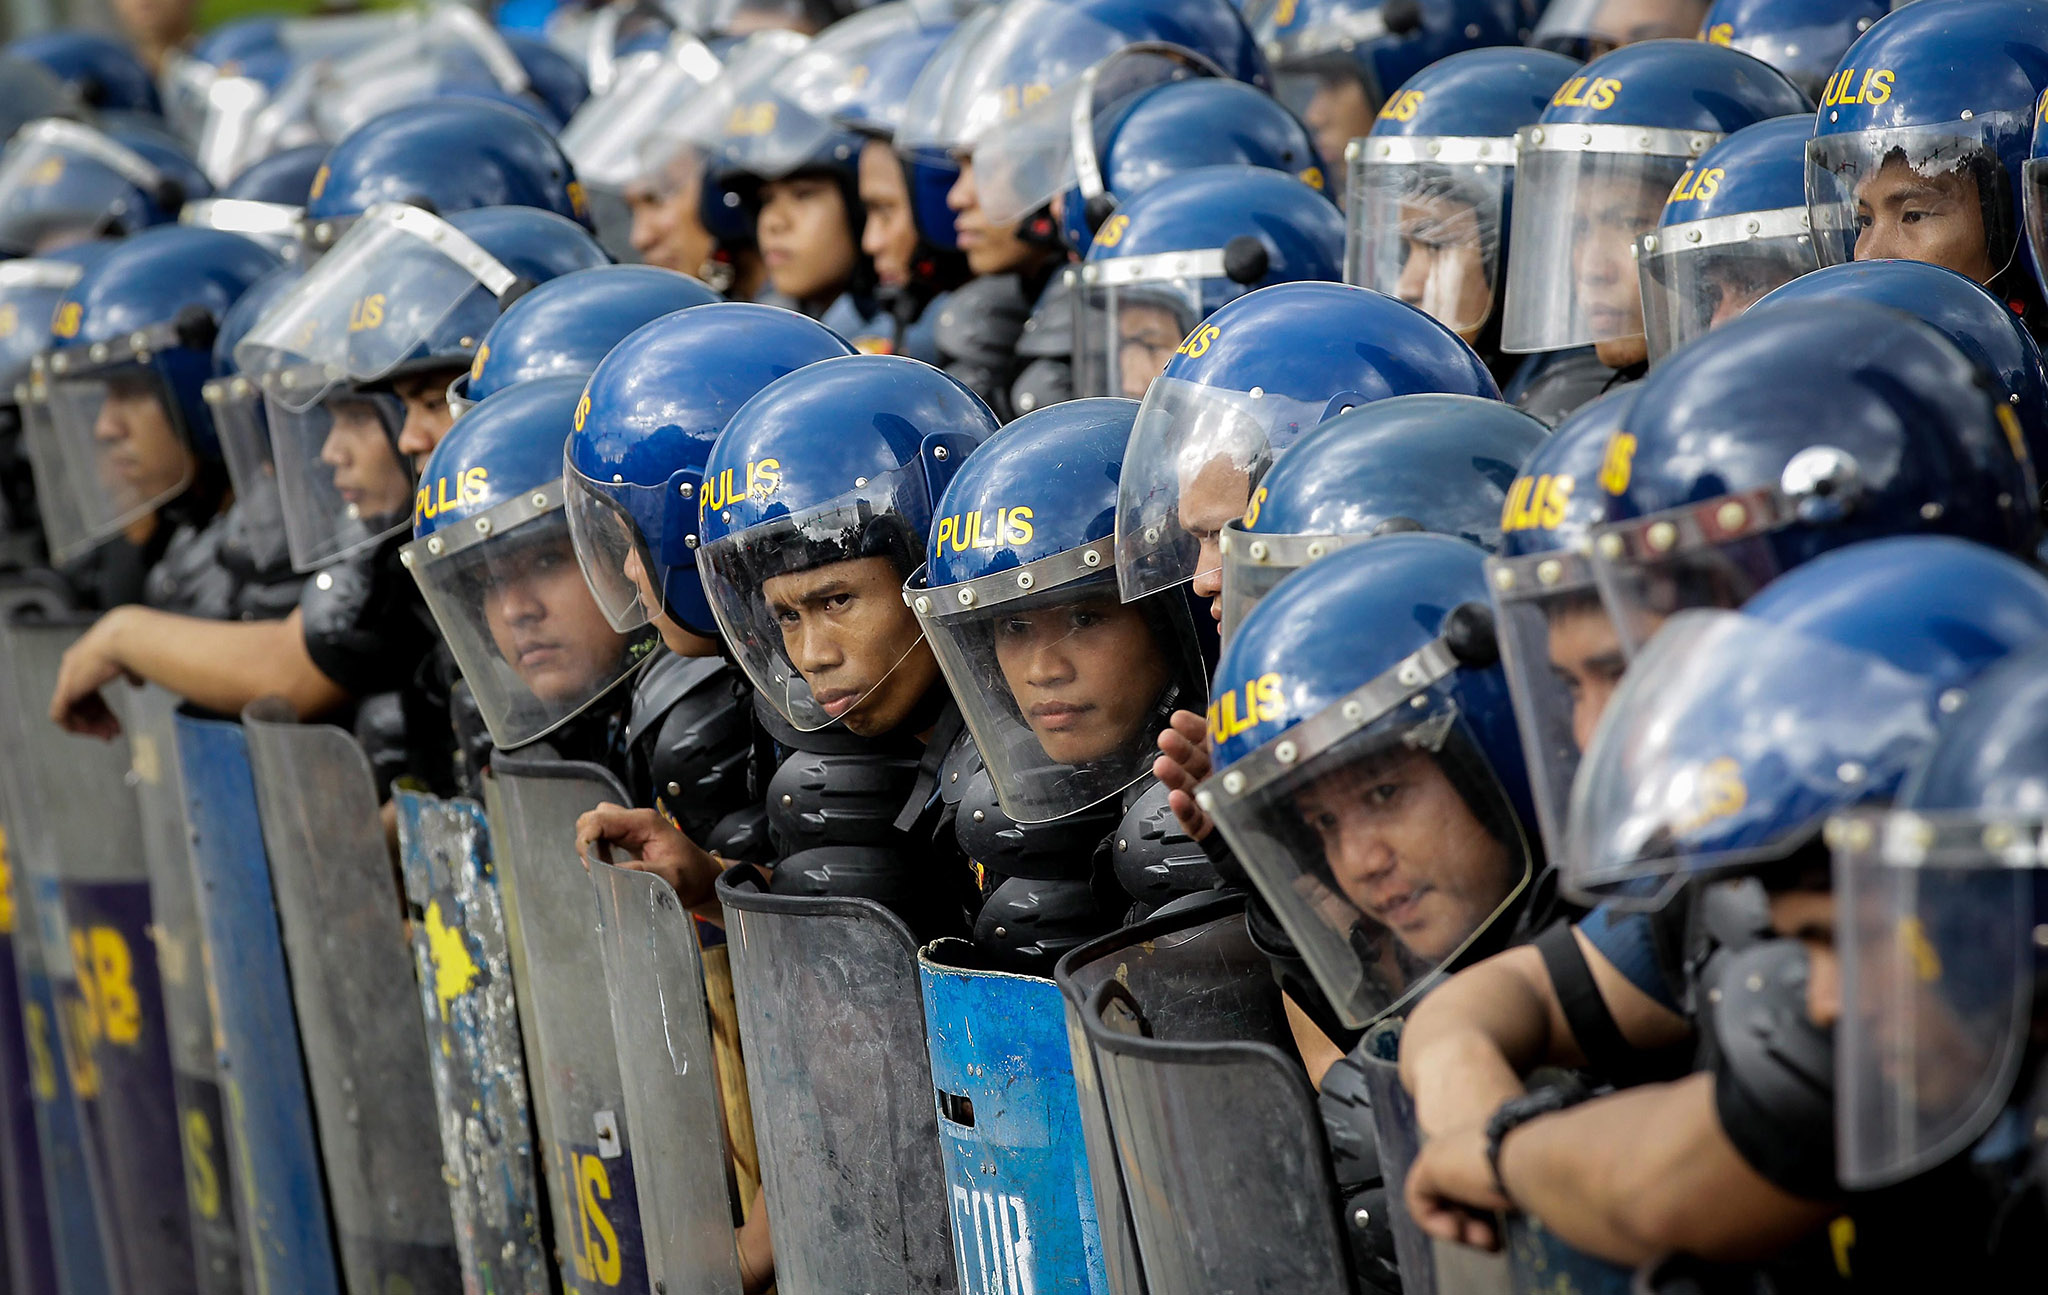 Filipino anti-riot police stand guard during a protest near the US Embassy in Manila, Philippines, 27 October 2016. Hundreds of protesters including Indigenous People, students and militant groups marched towards the US Embassy to protest against the presence of US military troops and condemning the violent dispersal on 19 October which left at least forty people hurt including twenty police officers and three people who were run over by a police van.  EPA/MARK R. CRISTINO